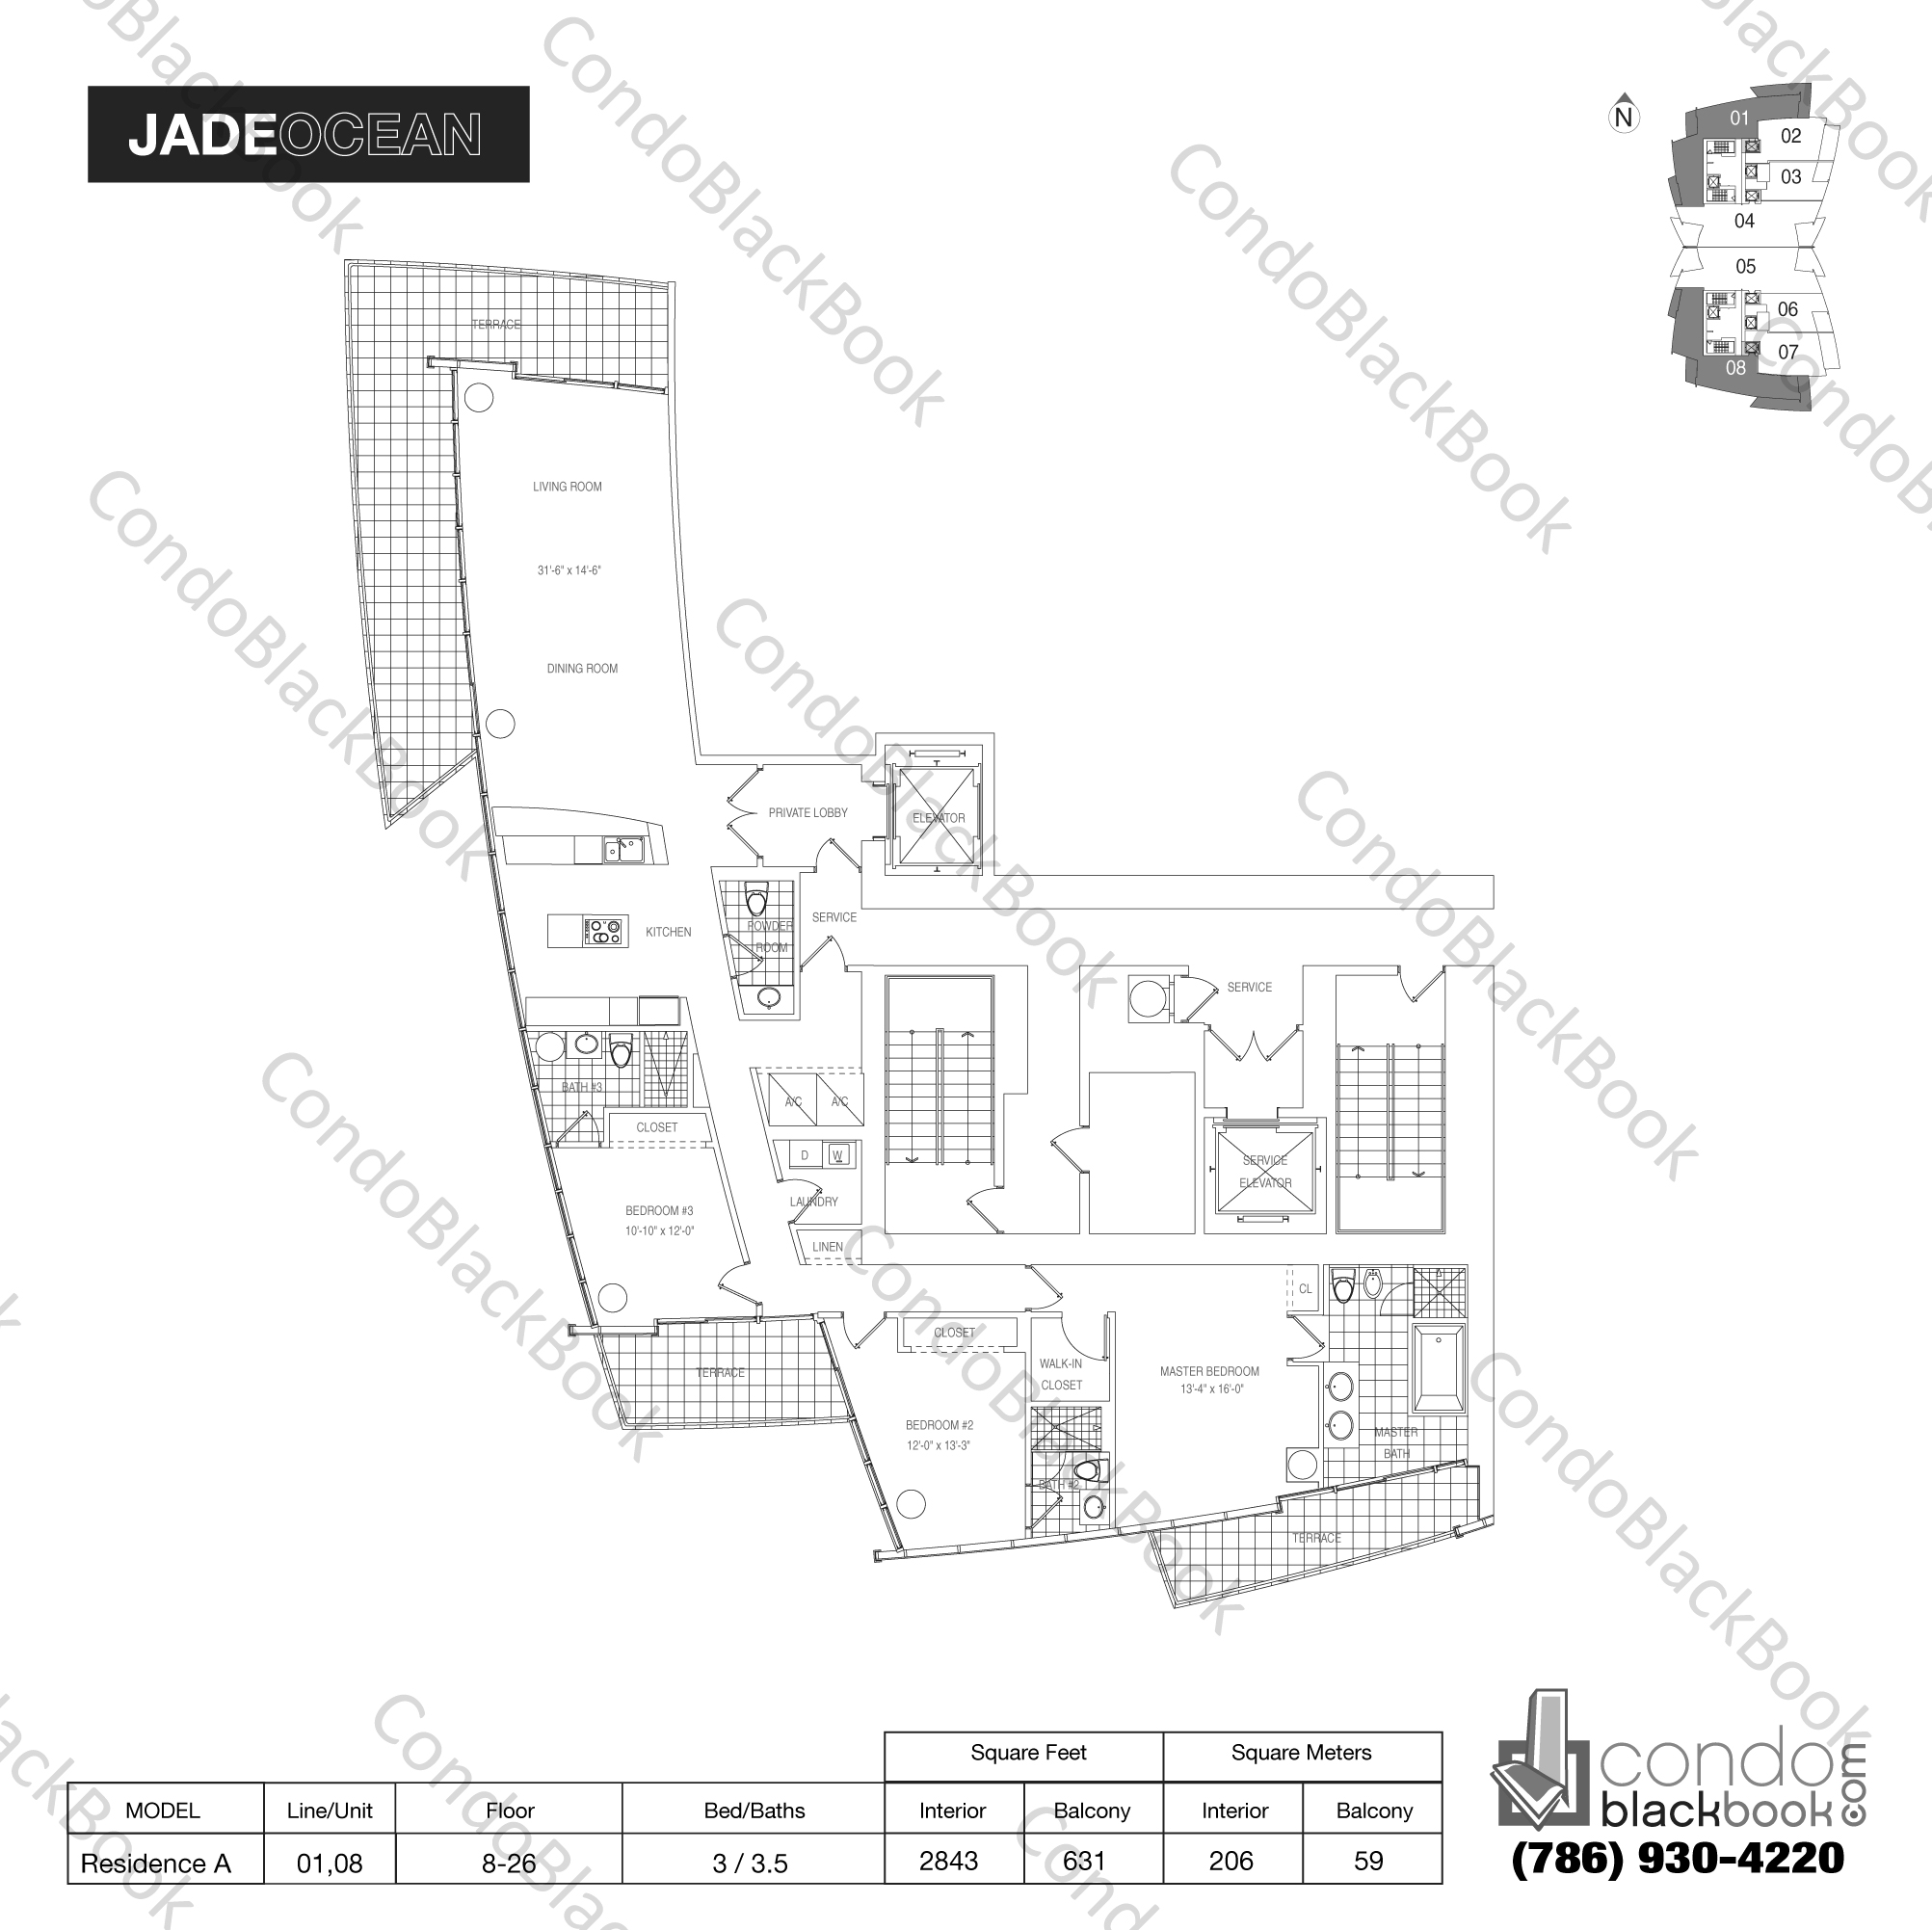 Floor plan for Jade Ocean Sunny Isles Beach, model Residence A, line 01,08, 3 / 3.5 bedrooms, 2843 sq ft